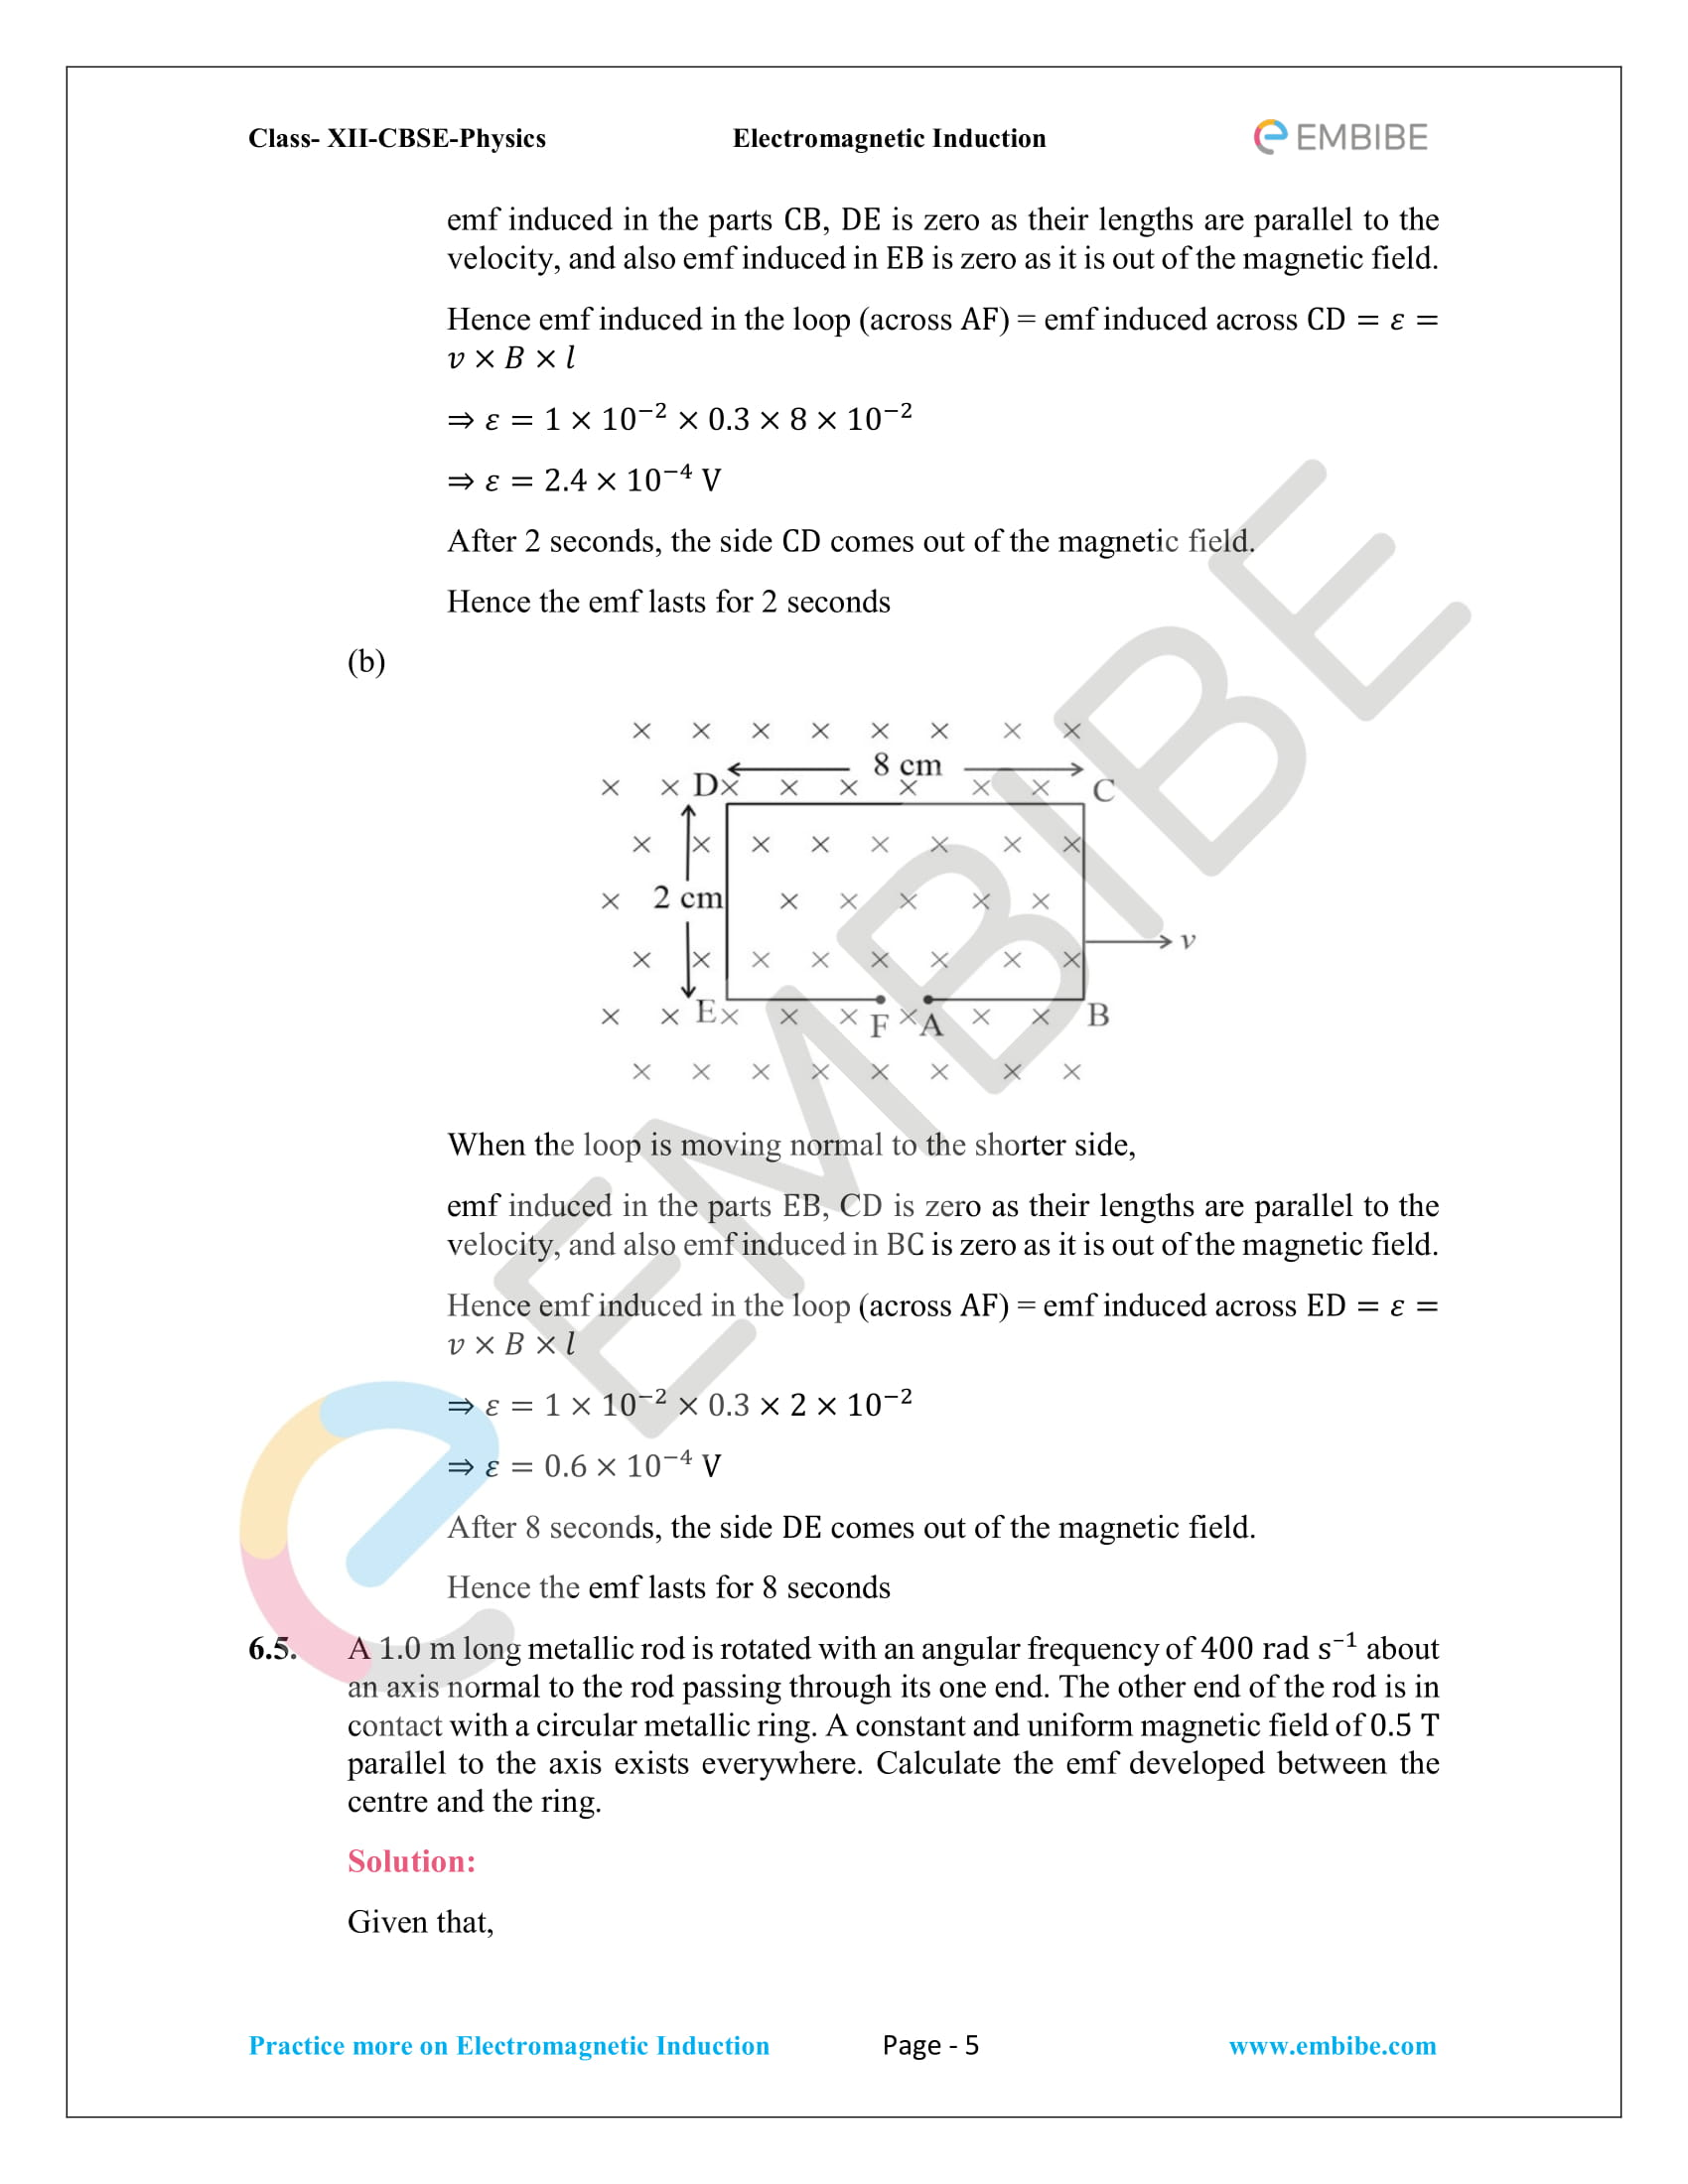 CBSE NCERT Solutions Class 12 Physics Chapter 6 PDF - Electromagnetic Induction - 5